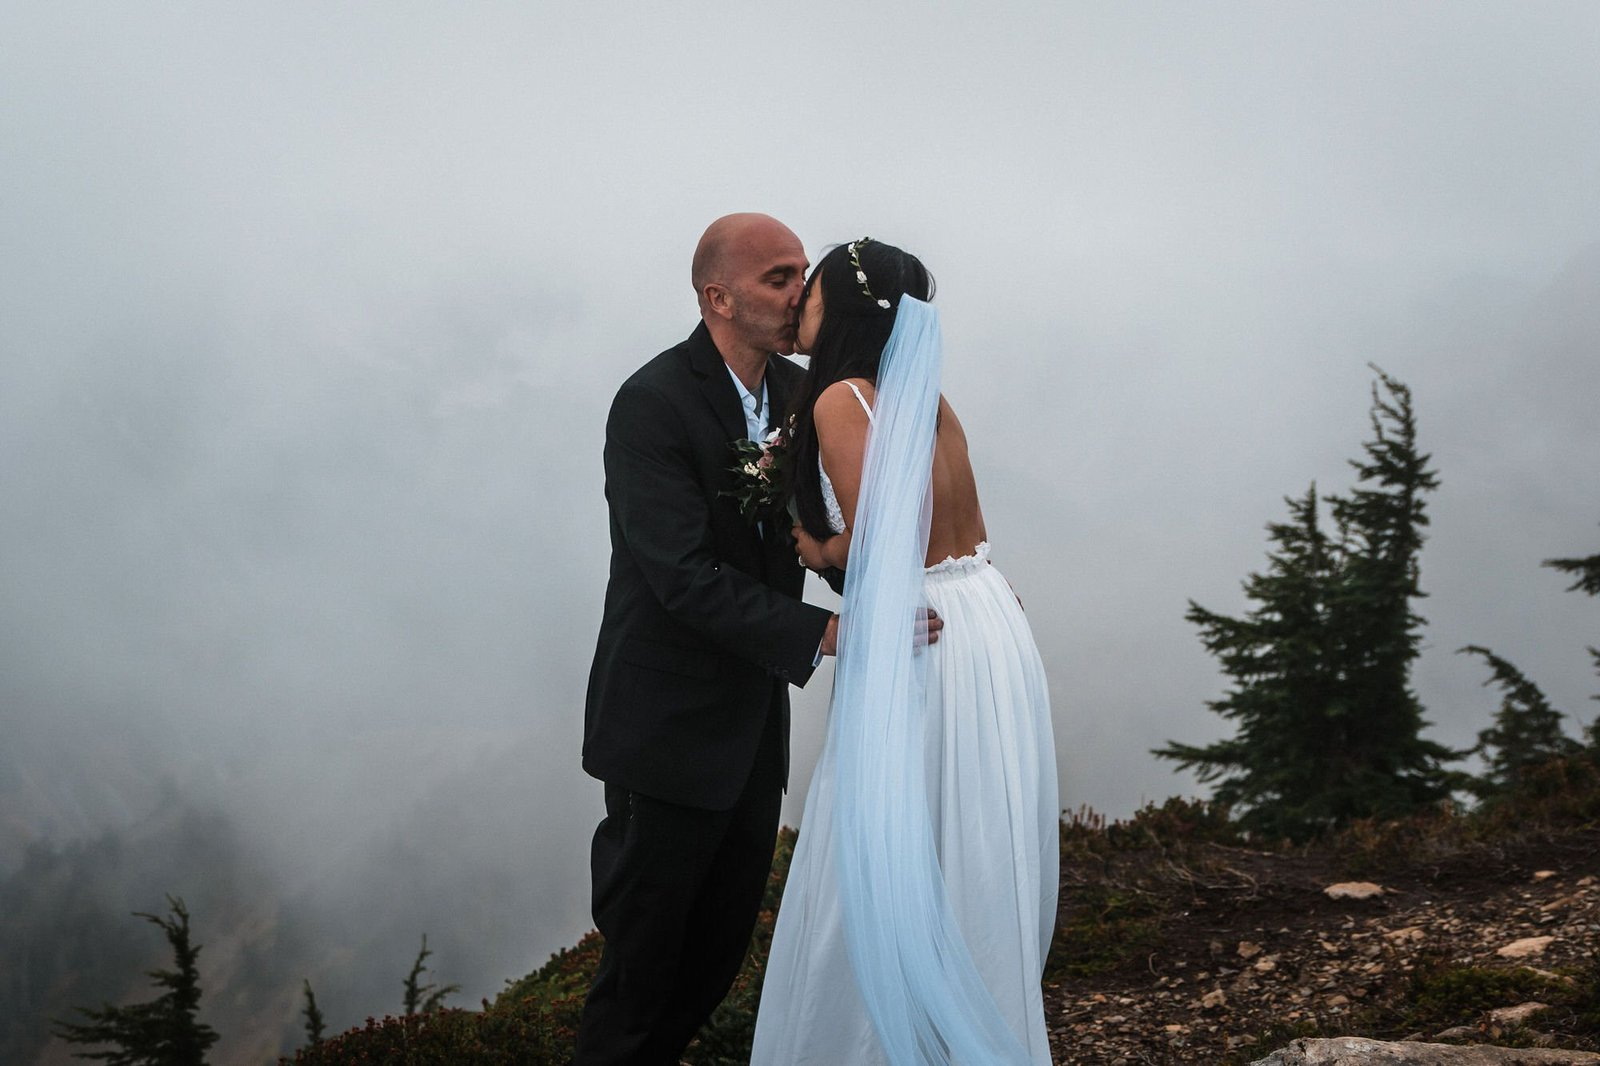 bride and groom share a kiss on the mountain.